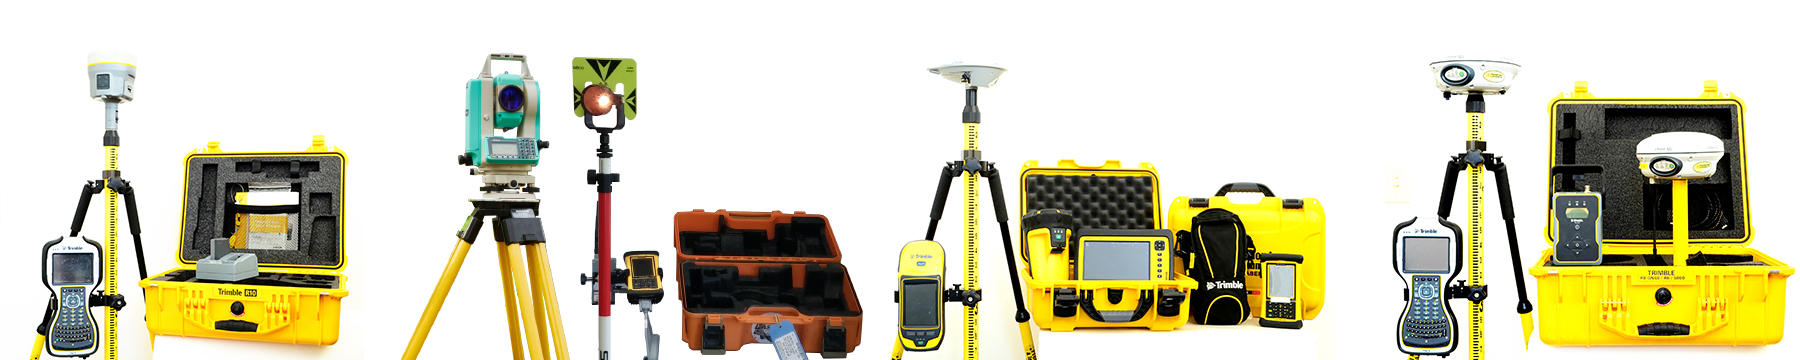 Survey Equipment Rentals